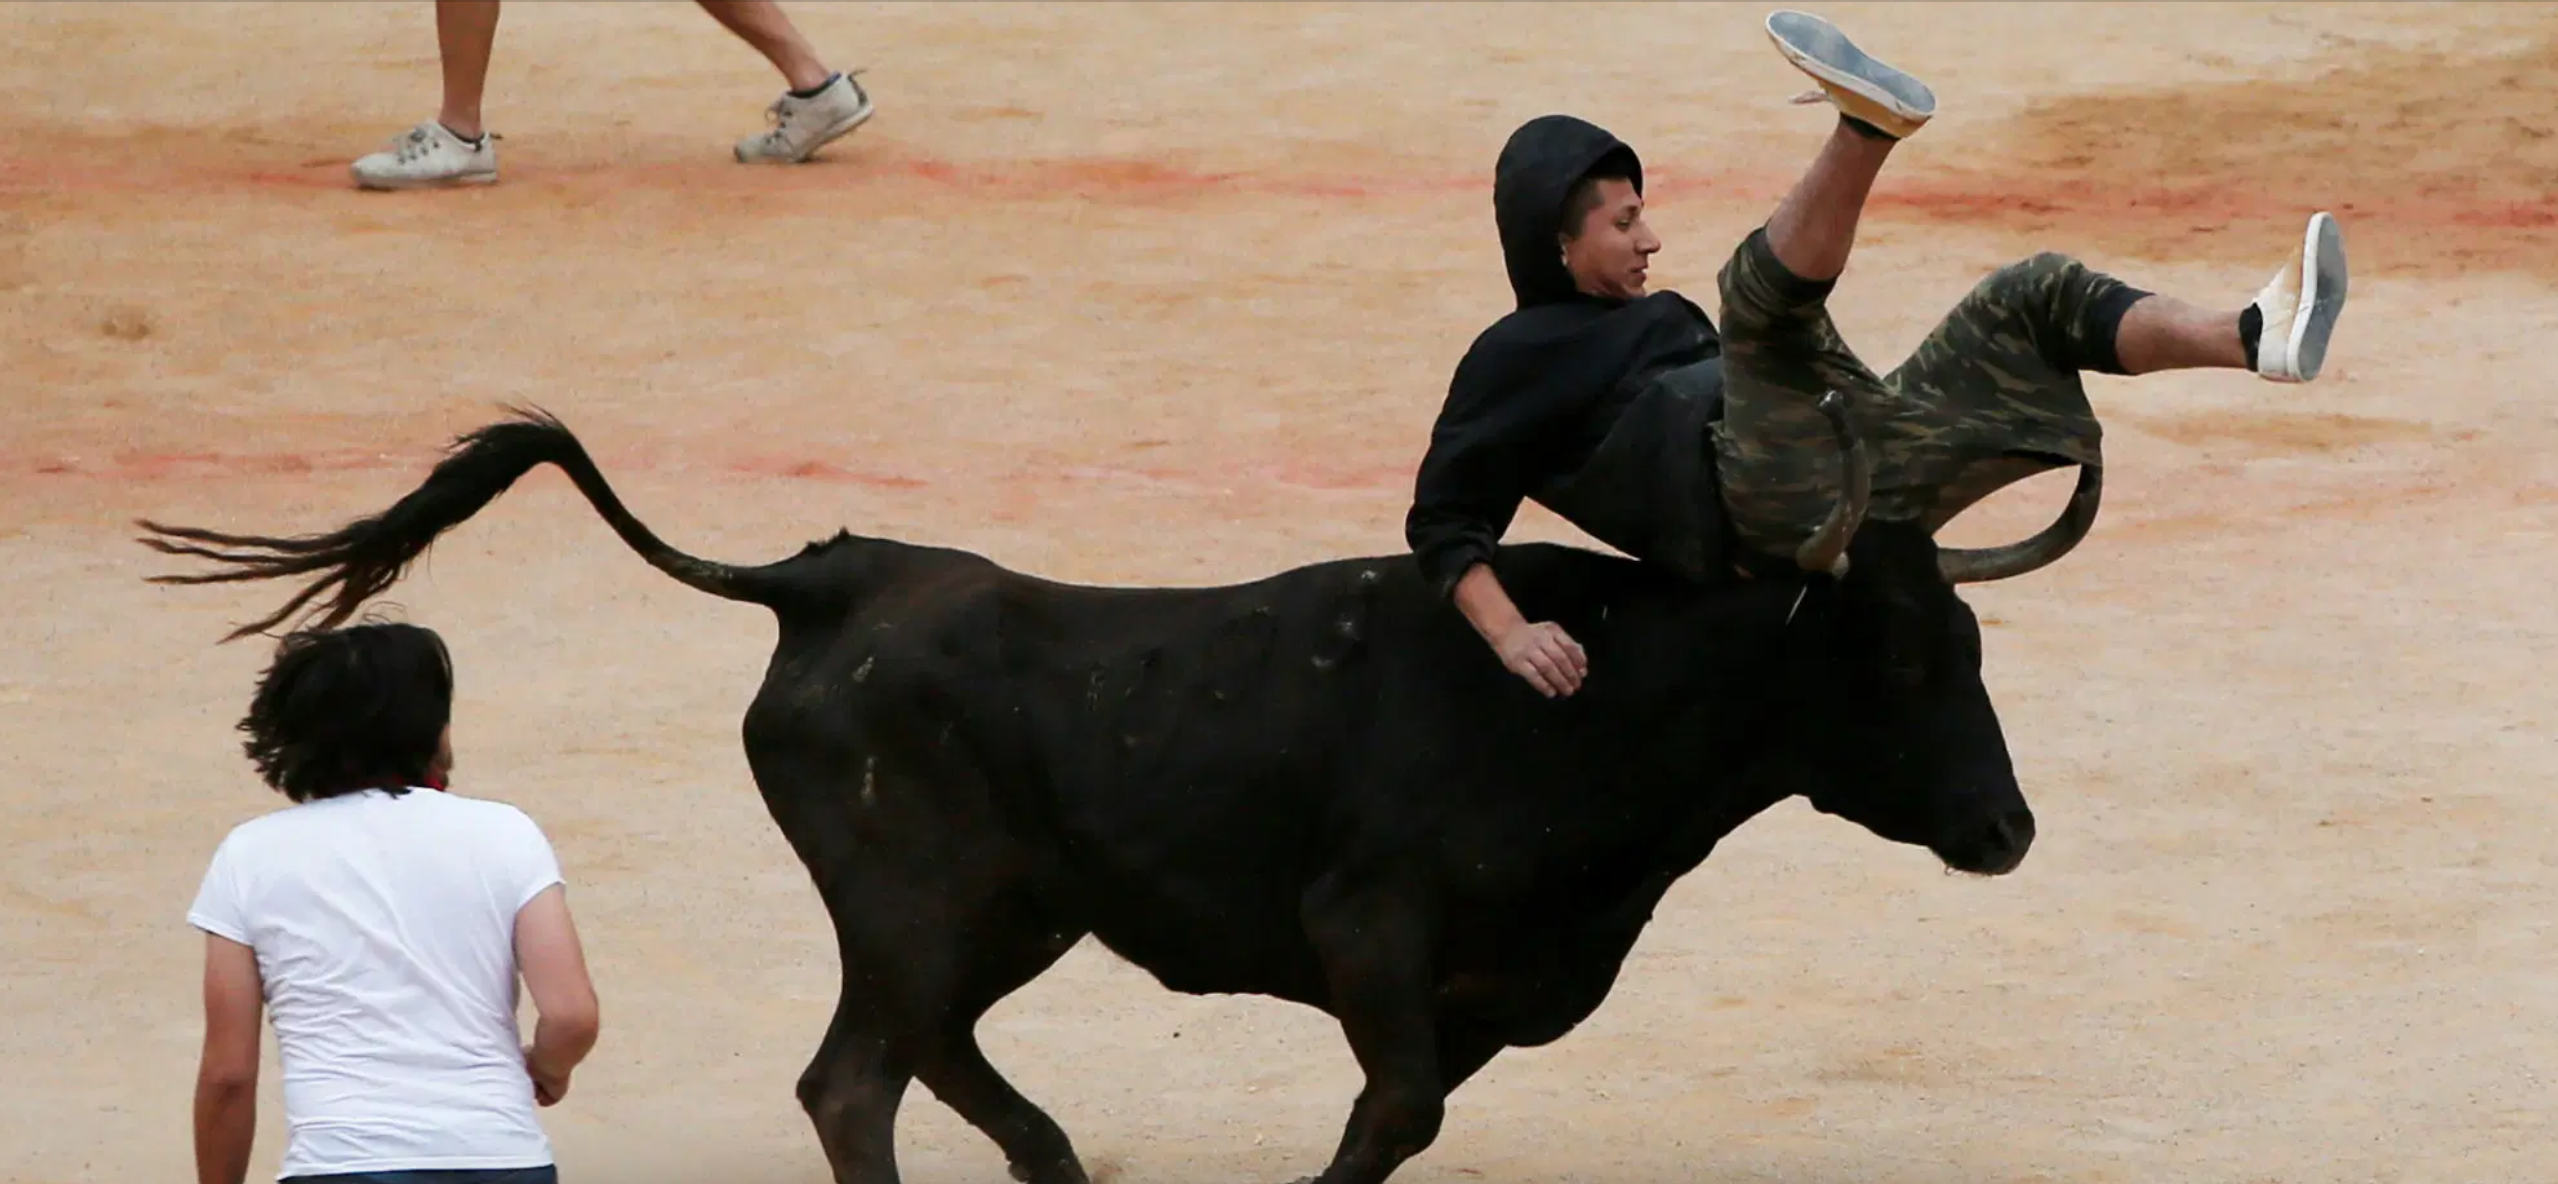 a person is thrown into the air by a bull